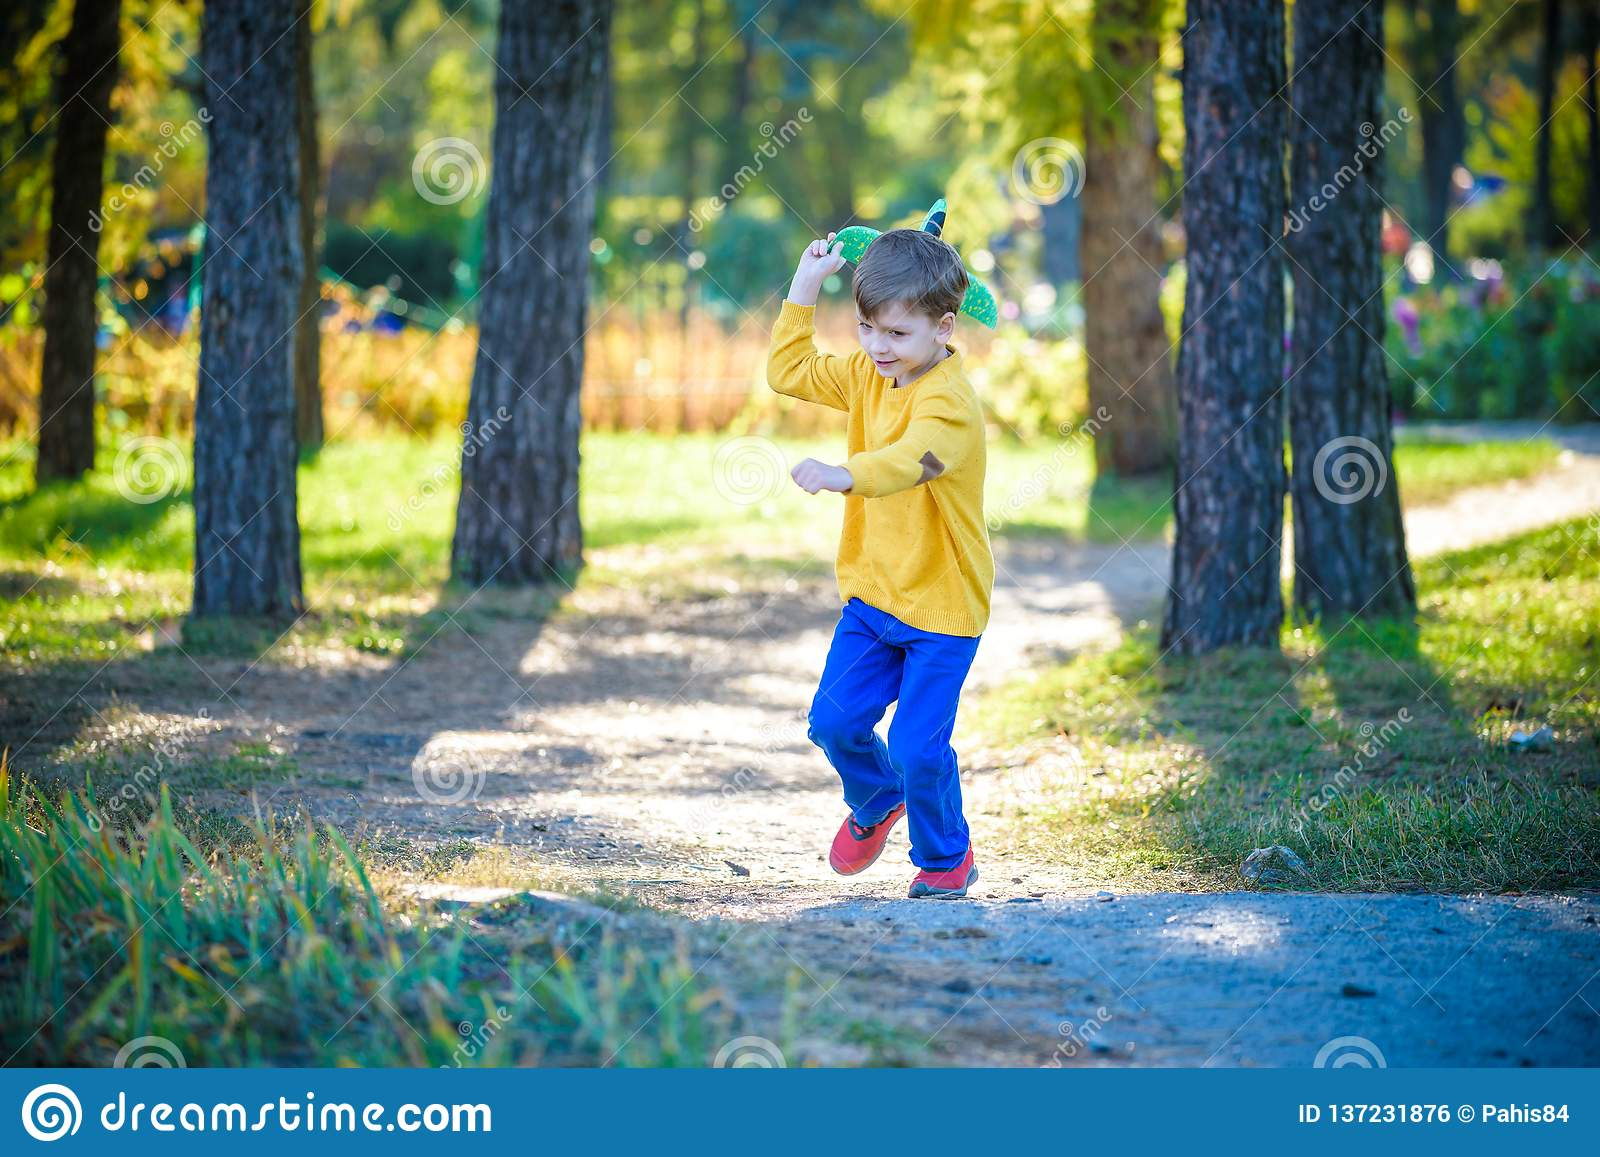 Happy kid playing with toy airplane against blue summer sky background. Boy throw foam plane in the forest or park. Best childhood